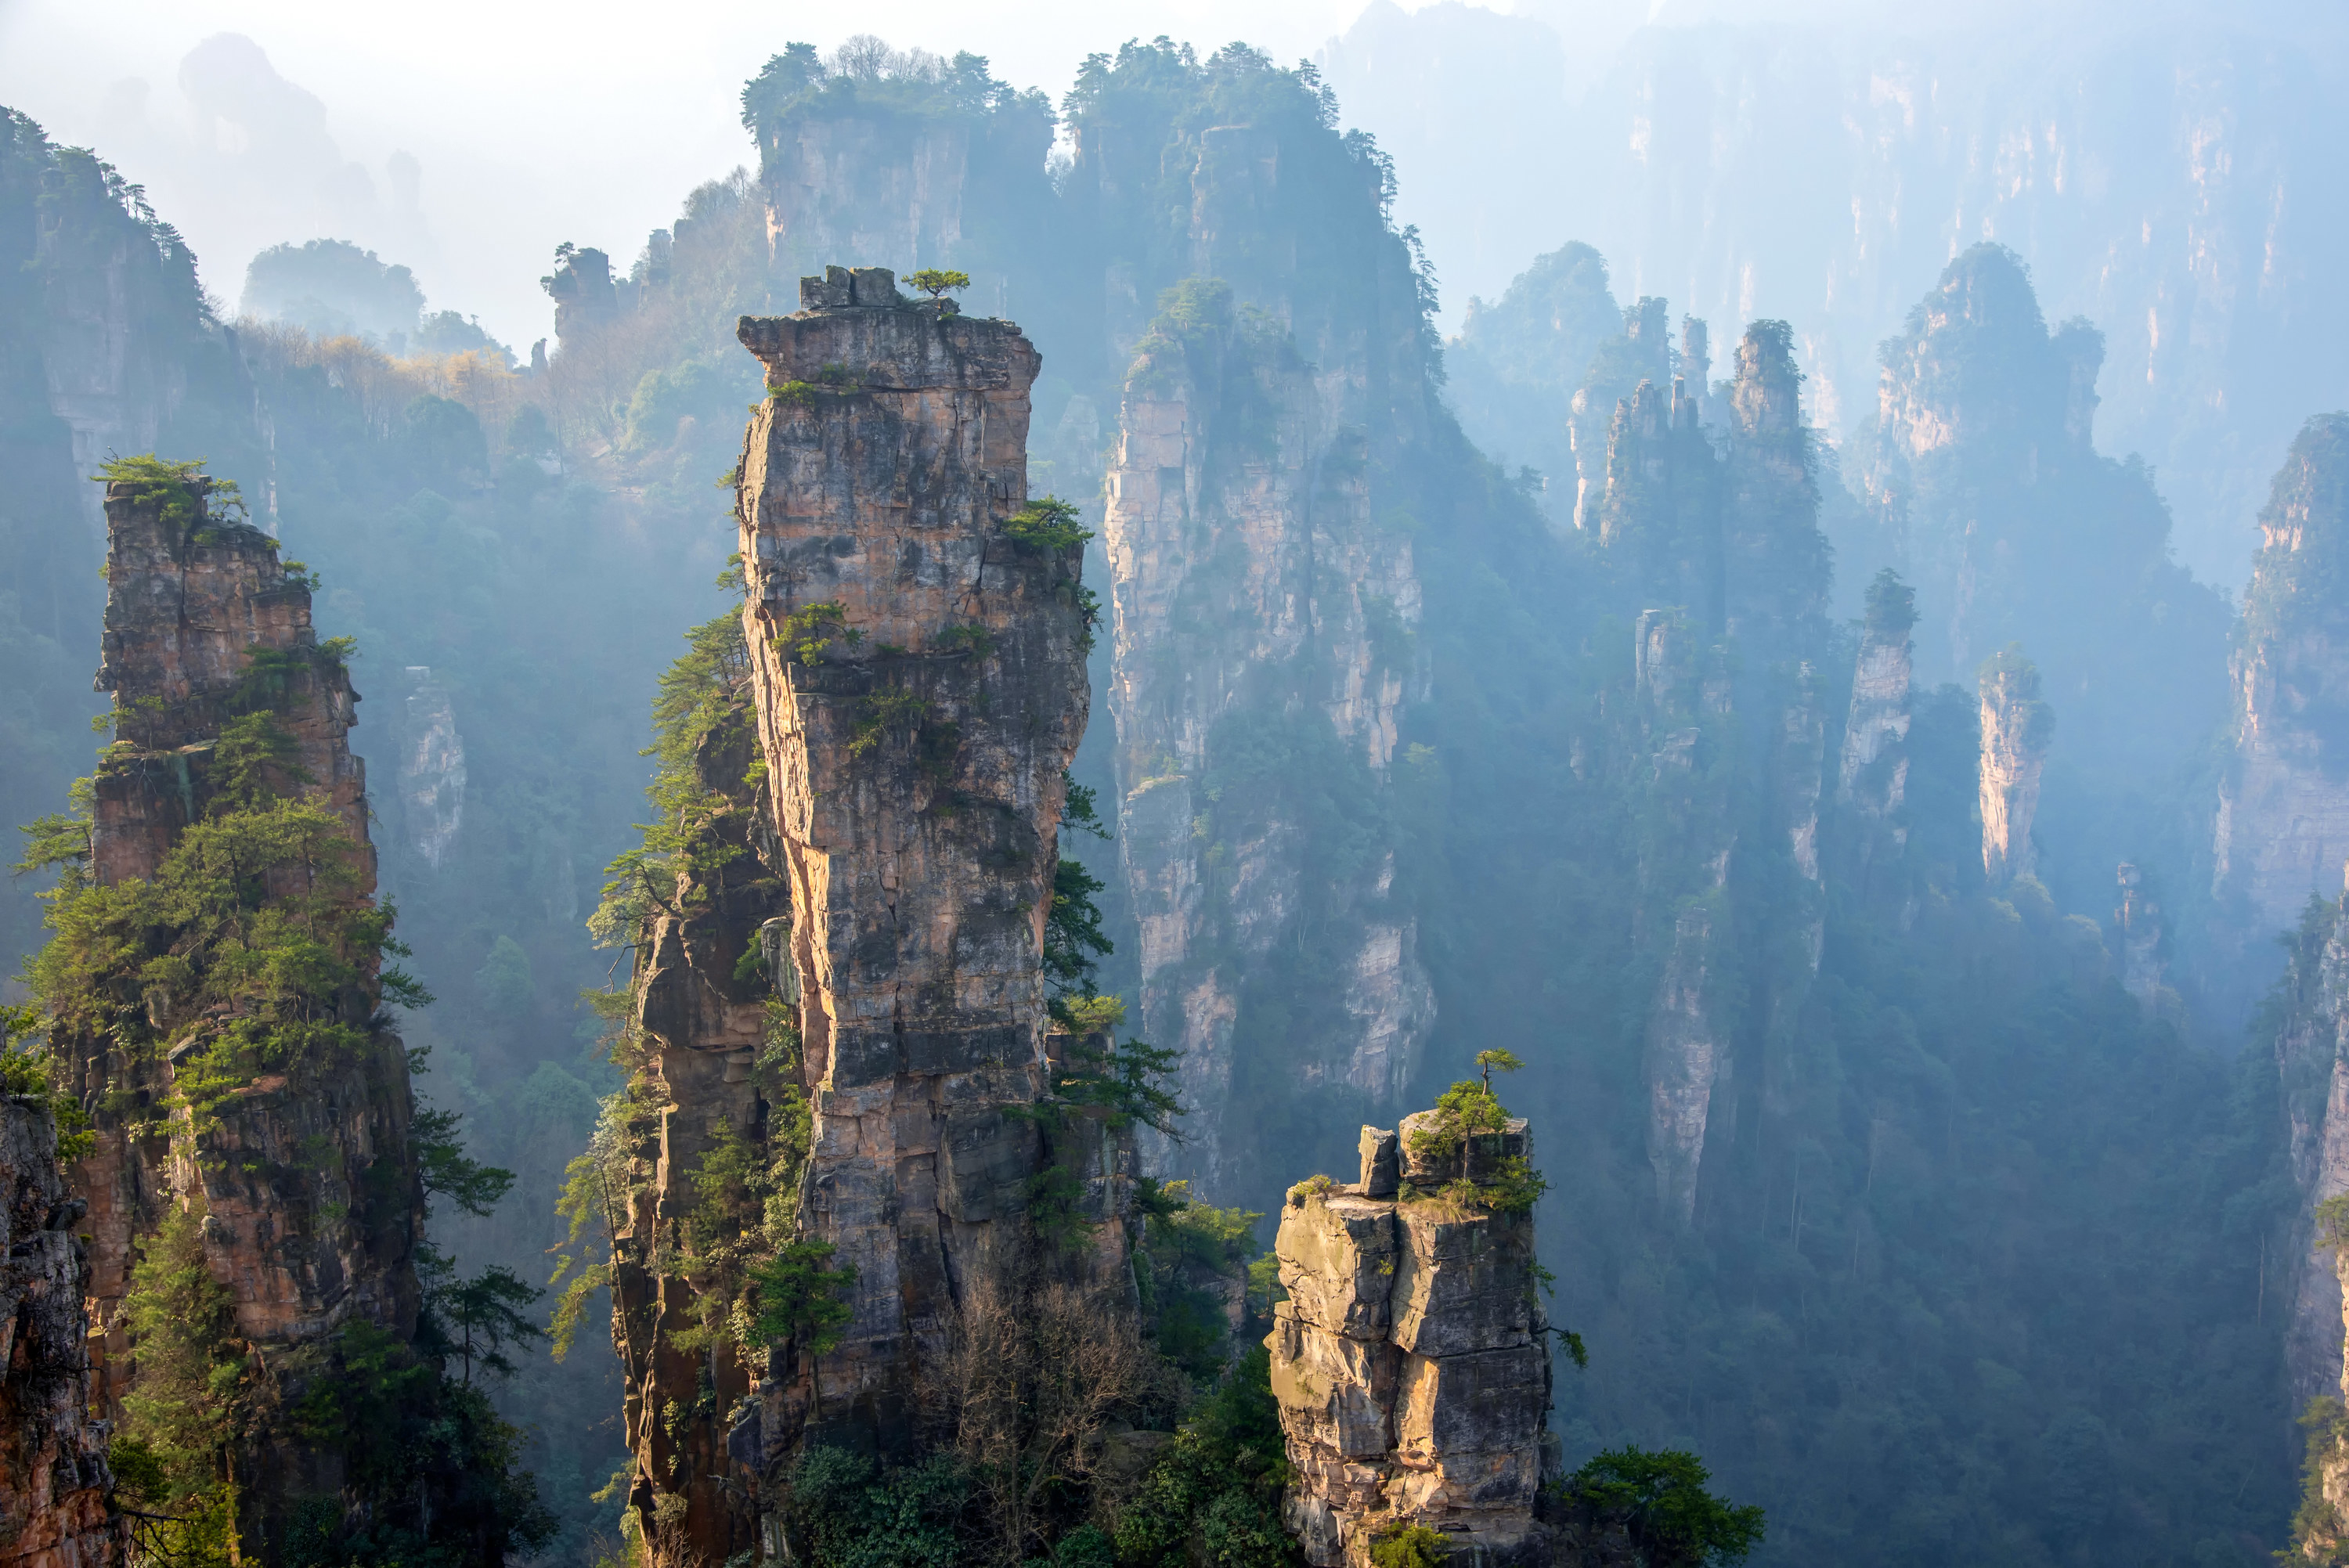 Tall pillar rock formations jutting out of a canyon with a cloudy fog in the background